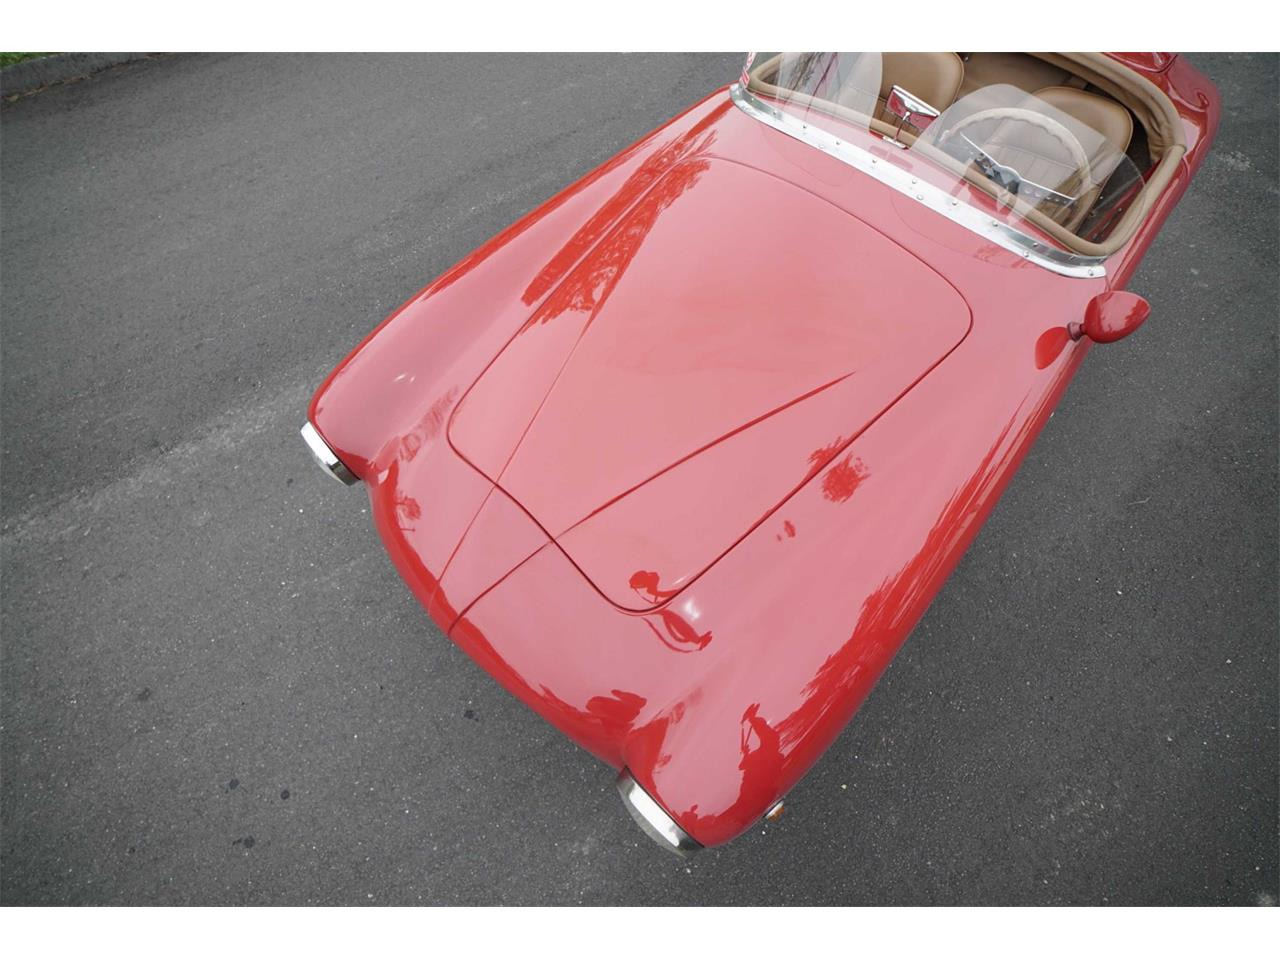 1951 Fiat Stanga Barchetta for sale in Westport, CT – photo 7